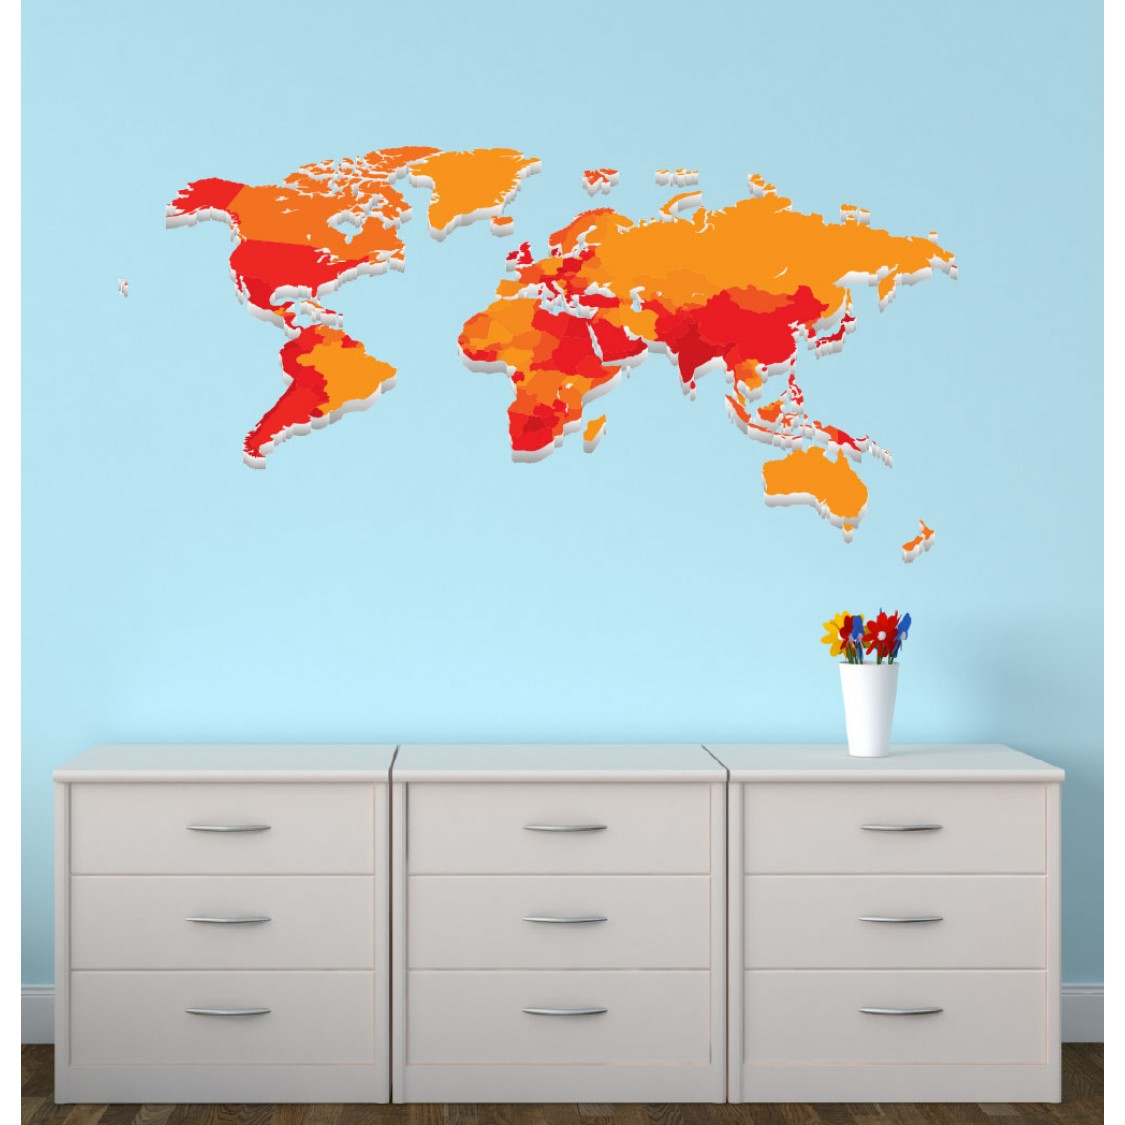 Childrens Bedroom Wall Stickers & World Map Wall Decor For Kids Rooms